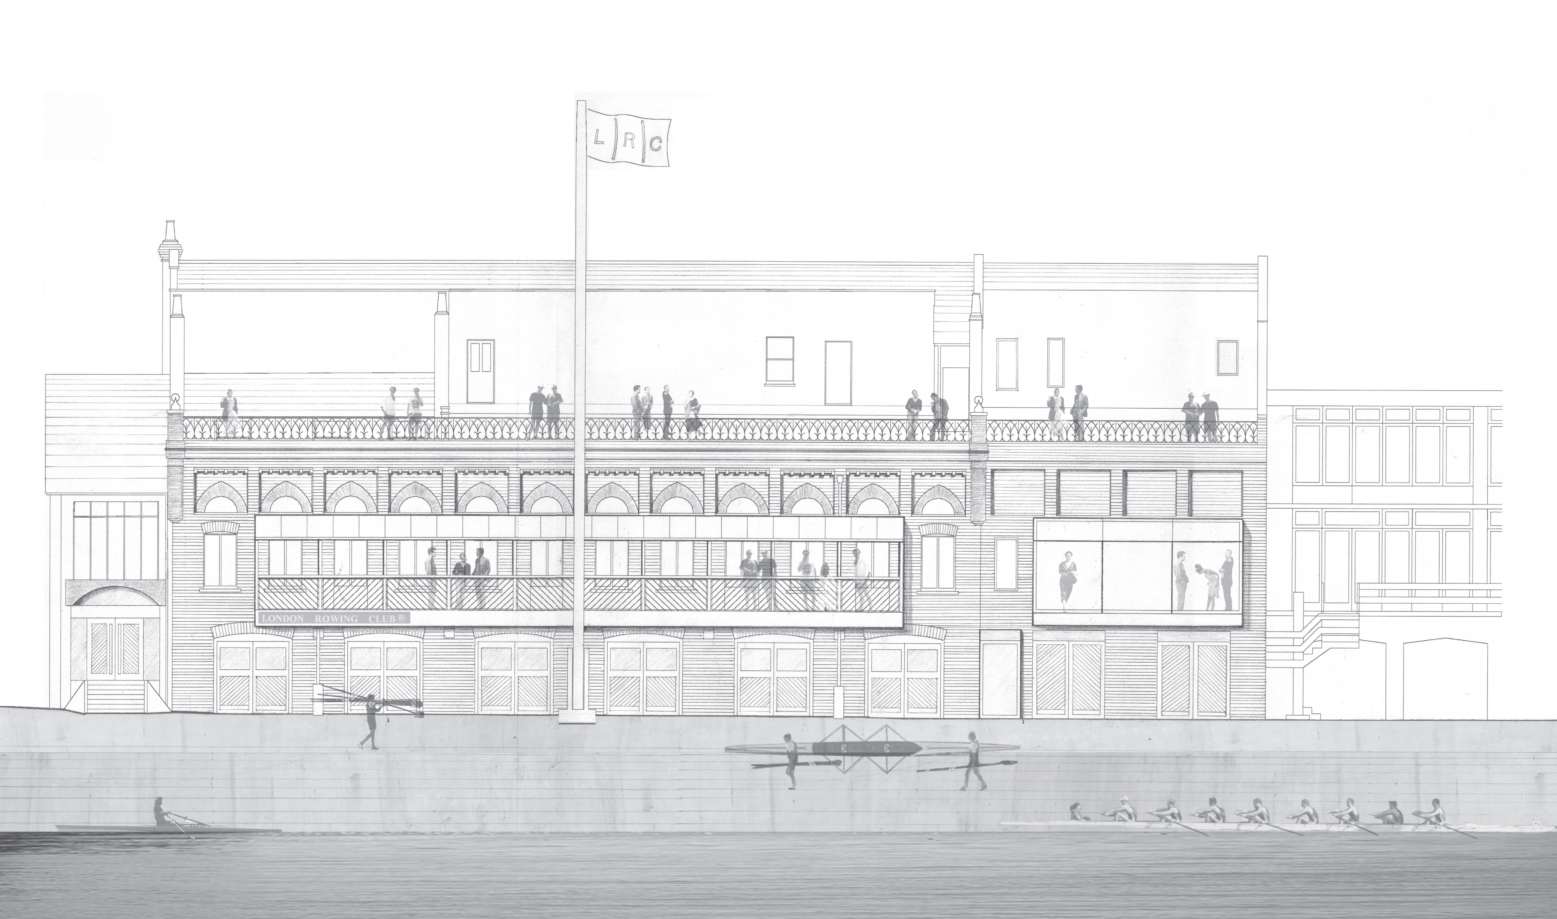 London Rowing Club sketch 1